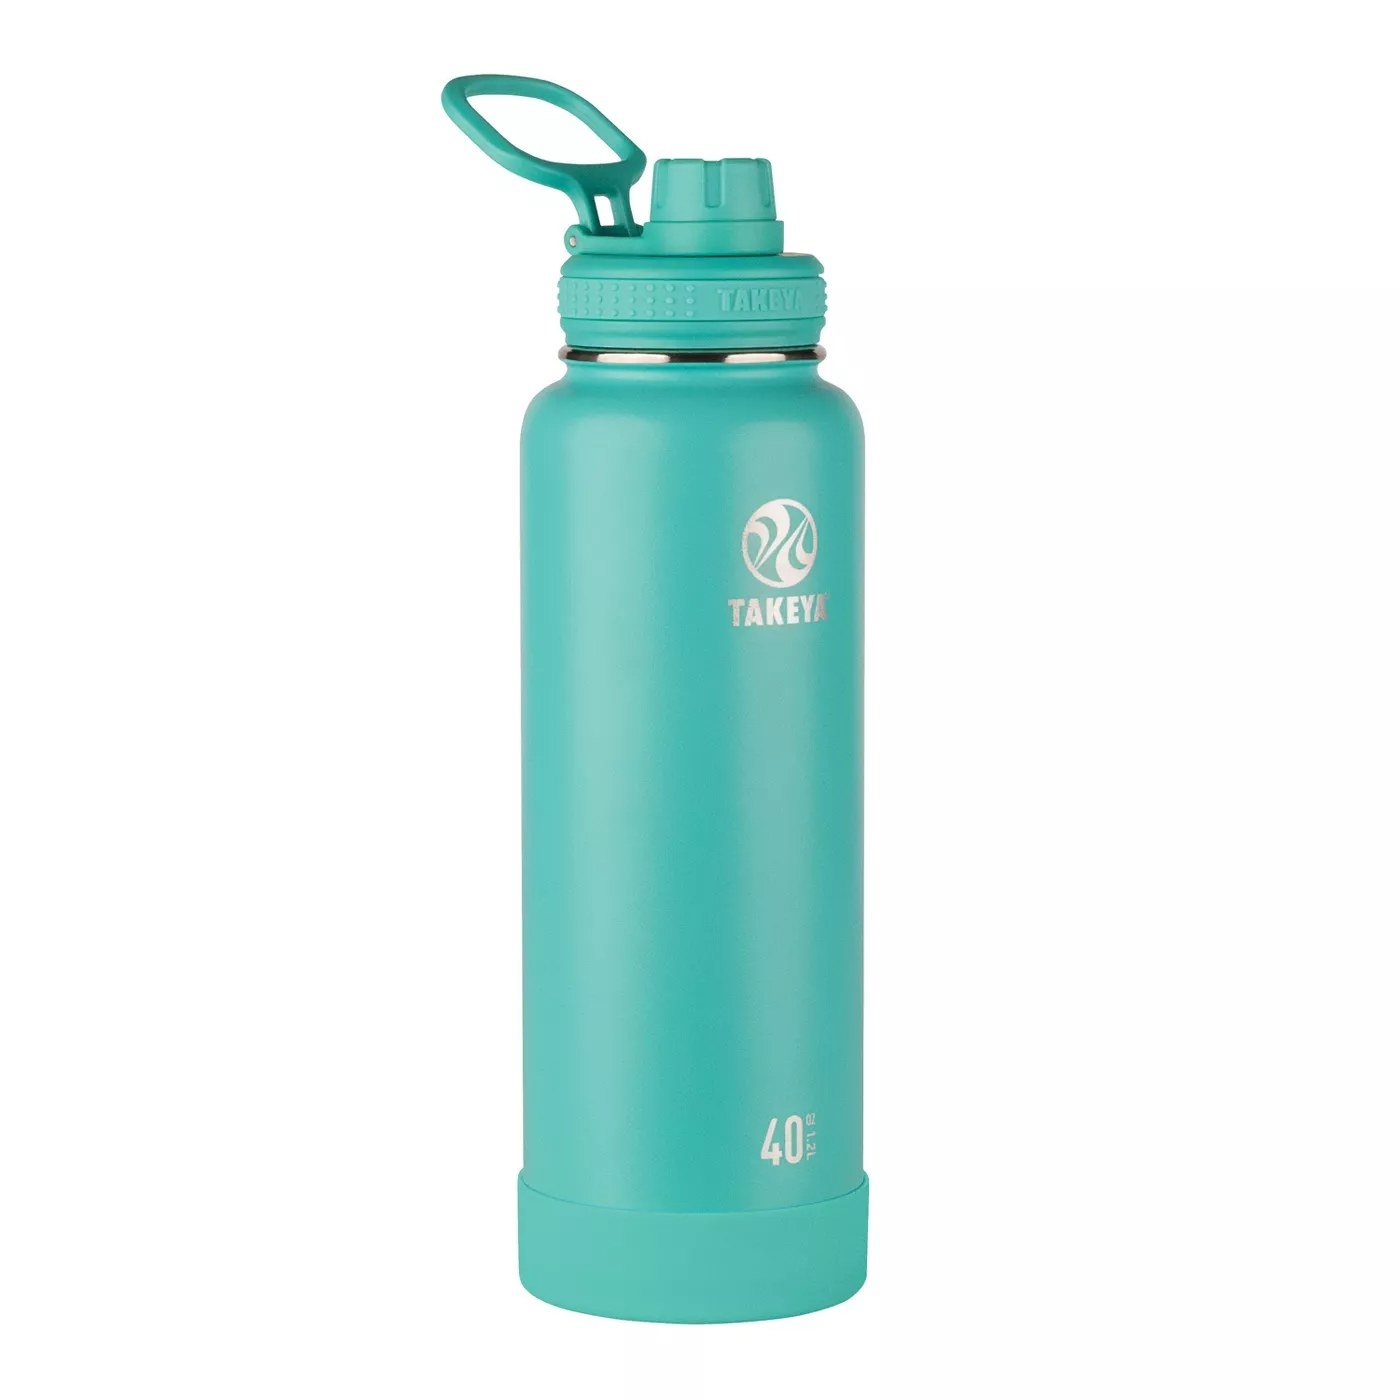 The teal water bottle